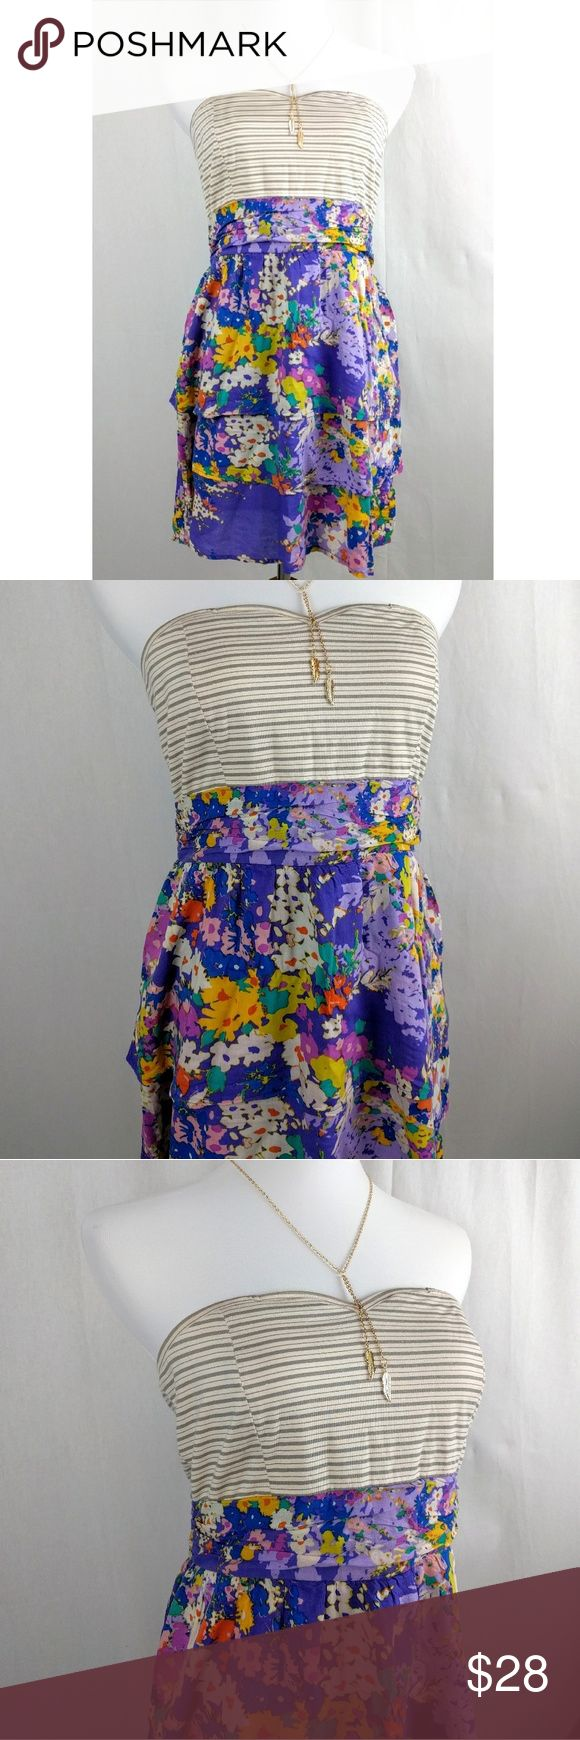 """O'Neil Spring Floral Stripe Soft Surf Dress O'Neill Floral Stripe Spring Dress. Super soft and comfortable surfer brand. Striped strapless top in ivory and grey. Ruched waist. Layered Flowy skirt. Purple, lavender, orange, yellow, blue, ivory, mint. Zip back. Size 9. Perfect for the beach or a cruise vacation. Excellent condition, no signs of wear. 100% Rayon. Length- 27"""" Bust- up to 36"""" (with stretch) Waist- 30"""" (no stretch) Hips- up to 42"""" Necklace also available. No trades, offers…"""